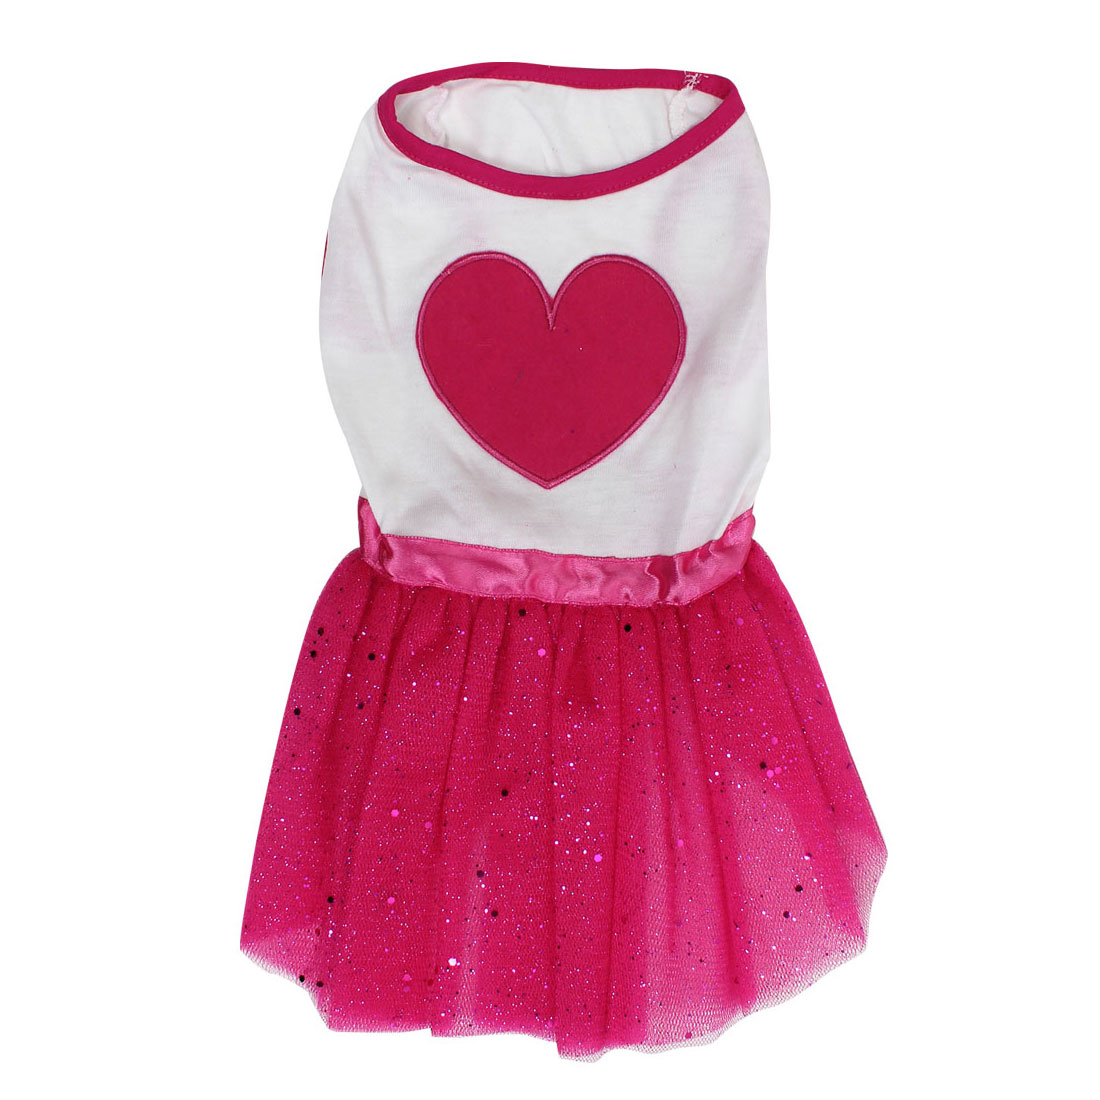 Pet Dog Doggie Heart Shaped Pattern Summer Ballet Dress Skirt White Red Size S